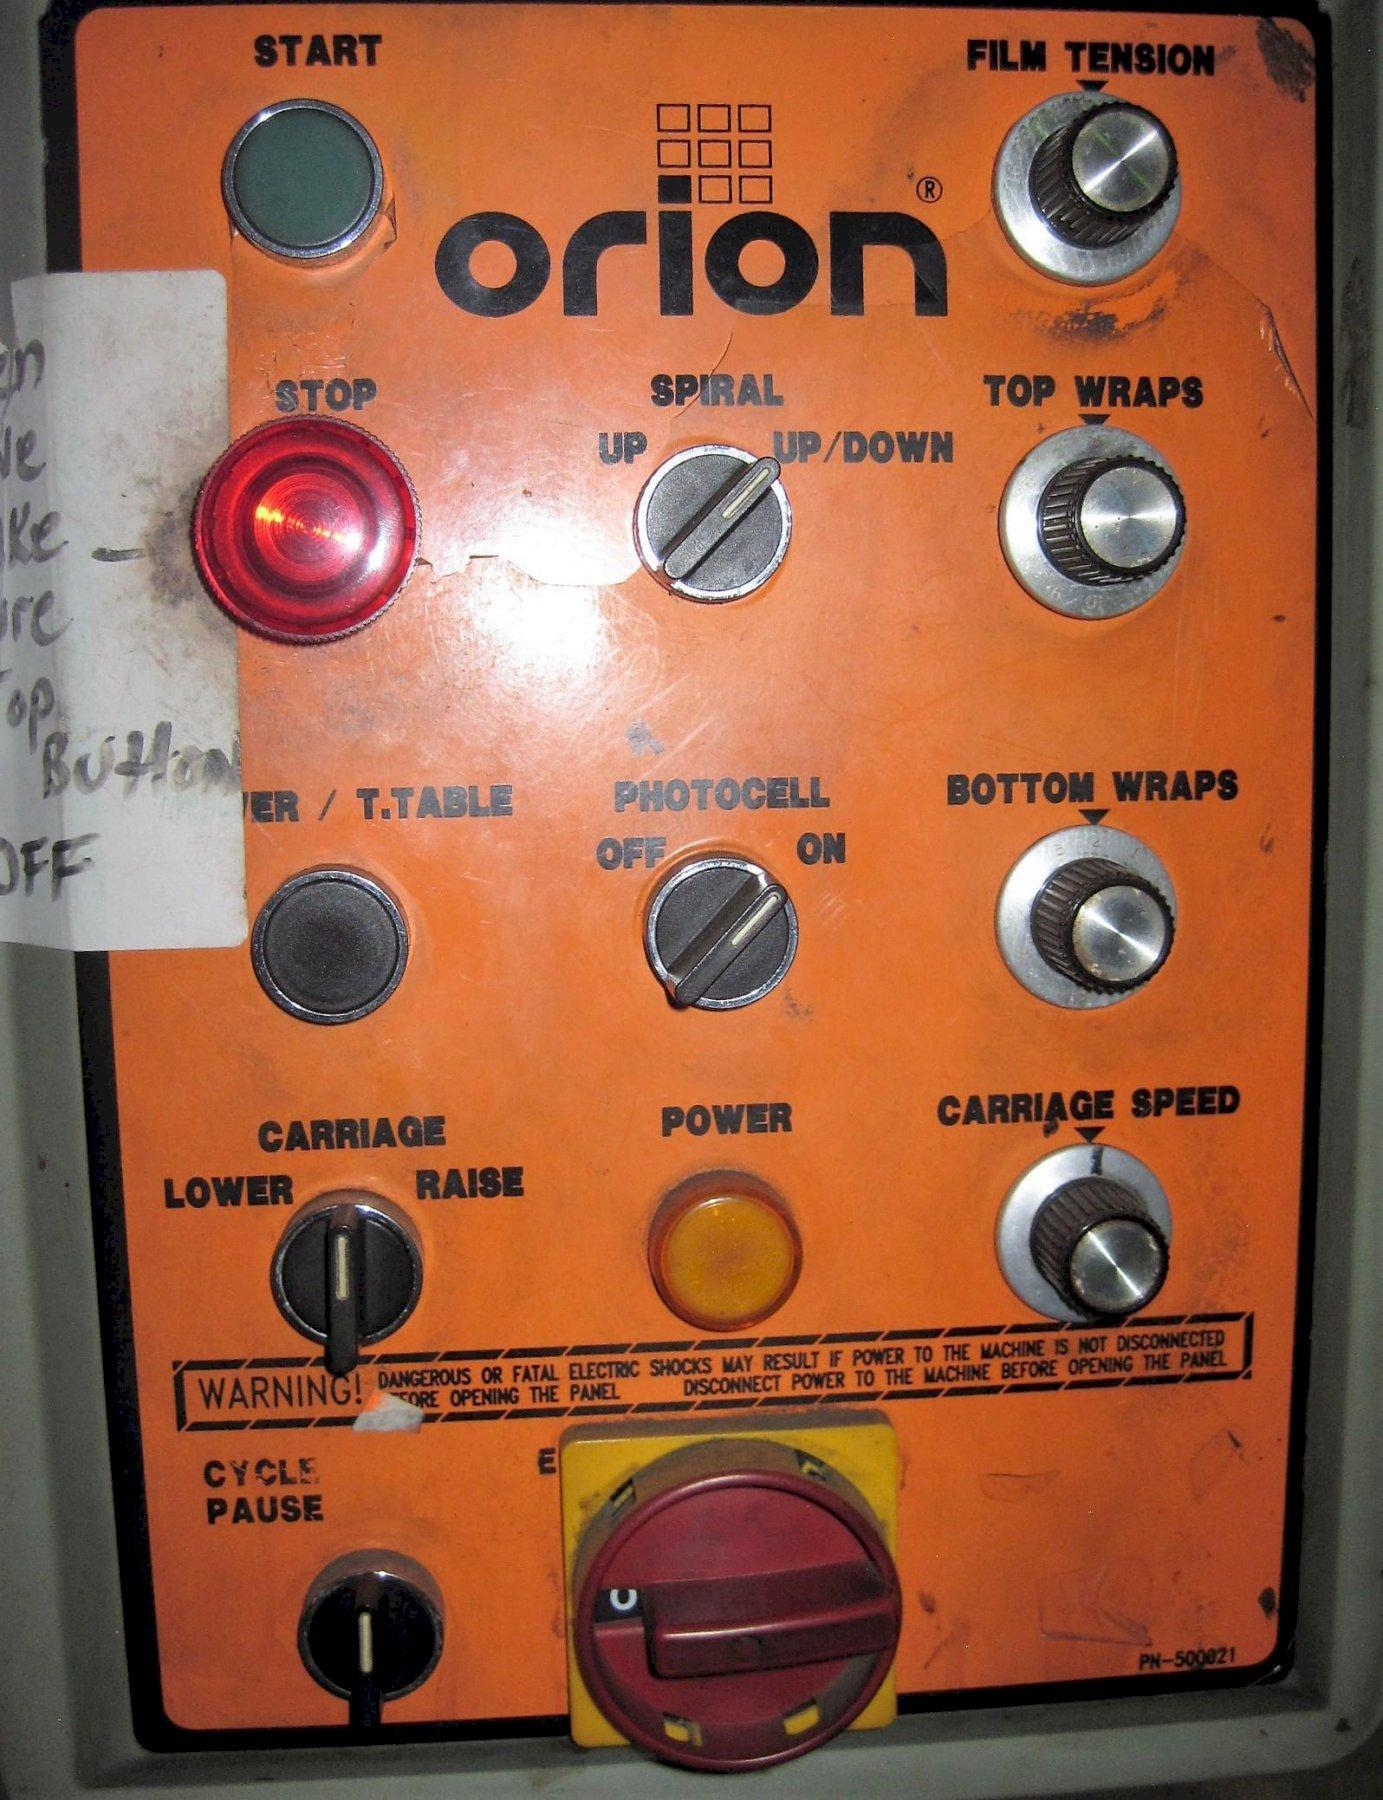 Orion Stretch Wrapping Machine